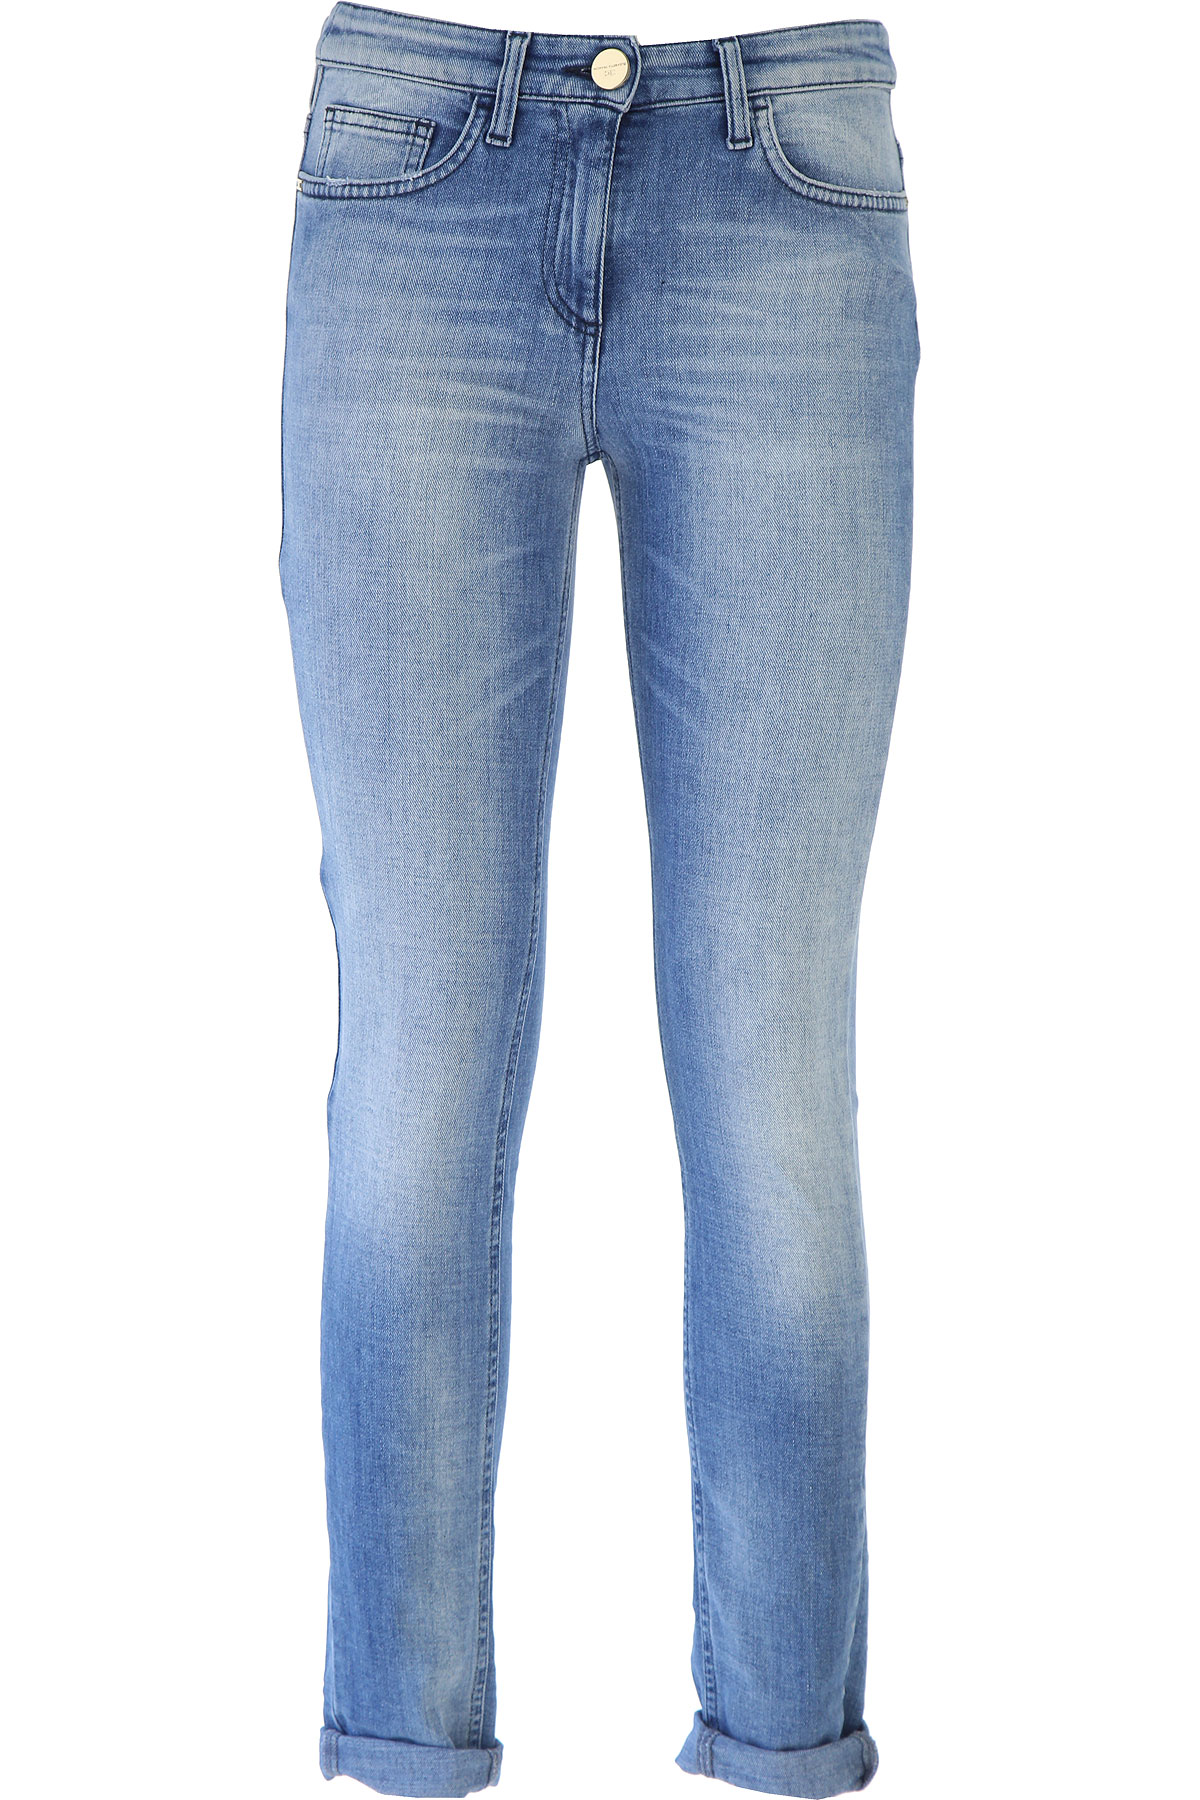 Elisabetta Franchi Jeans On Sale, Denim Blue, Cotton, 2017, 24 25 26 28 30